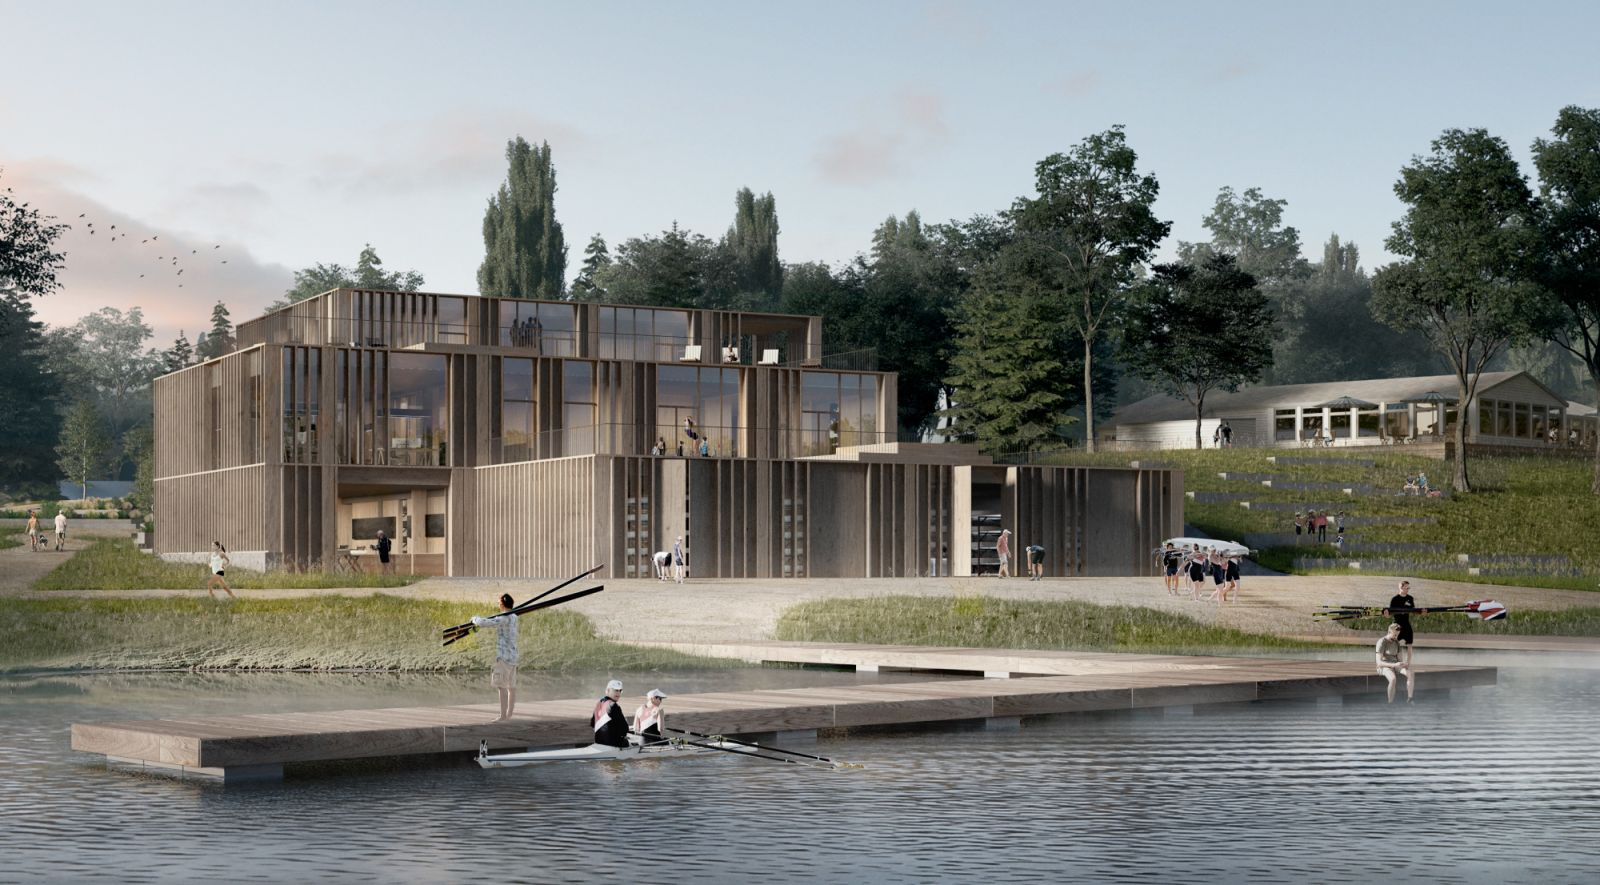 Denmark's Rowing Stadium